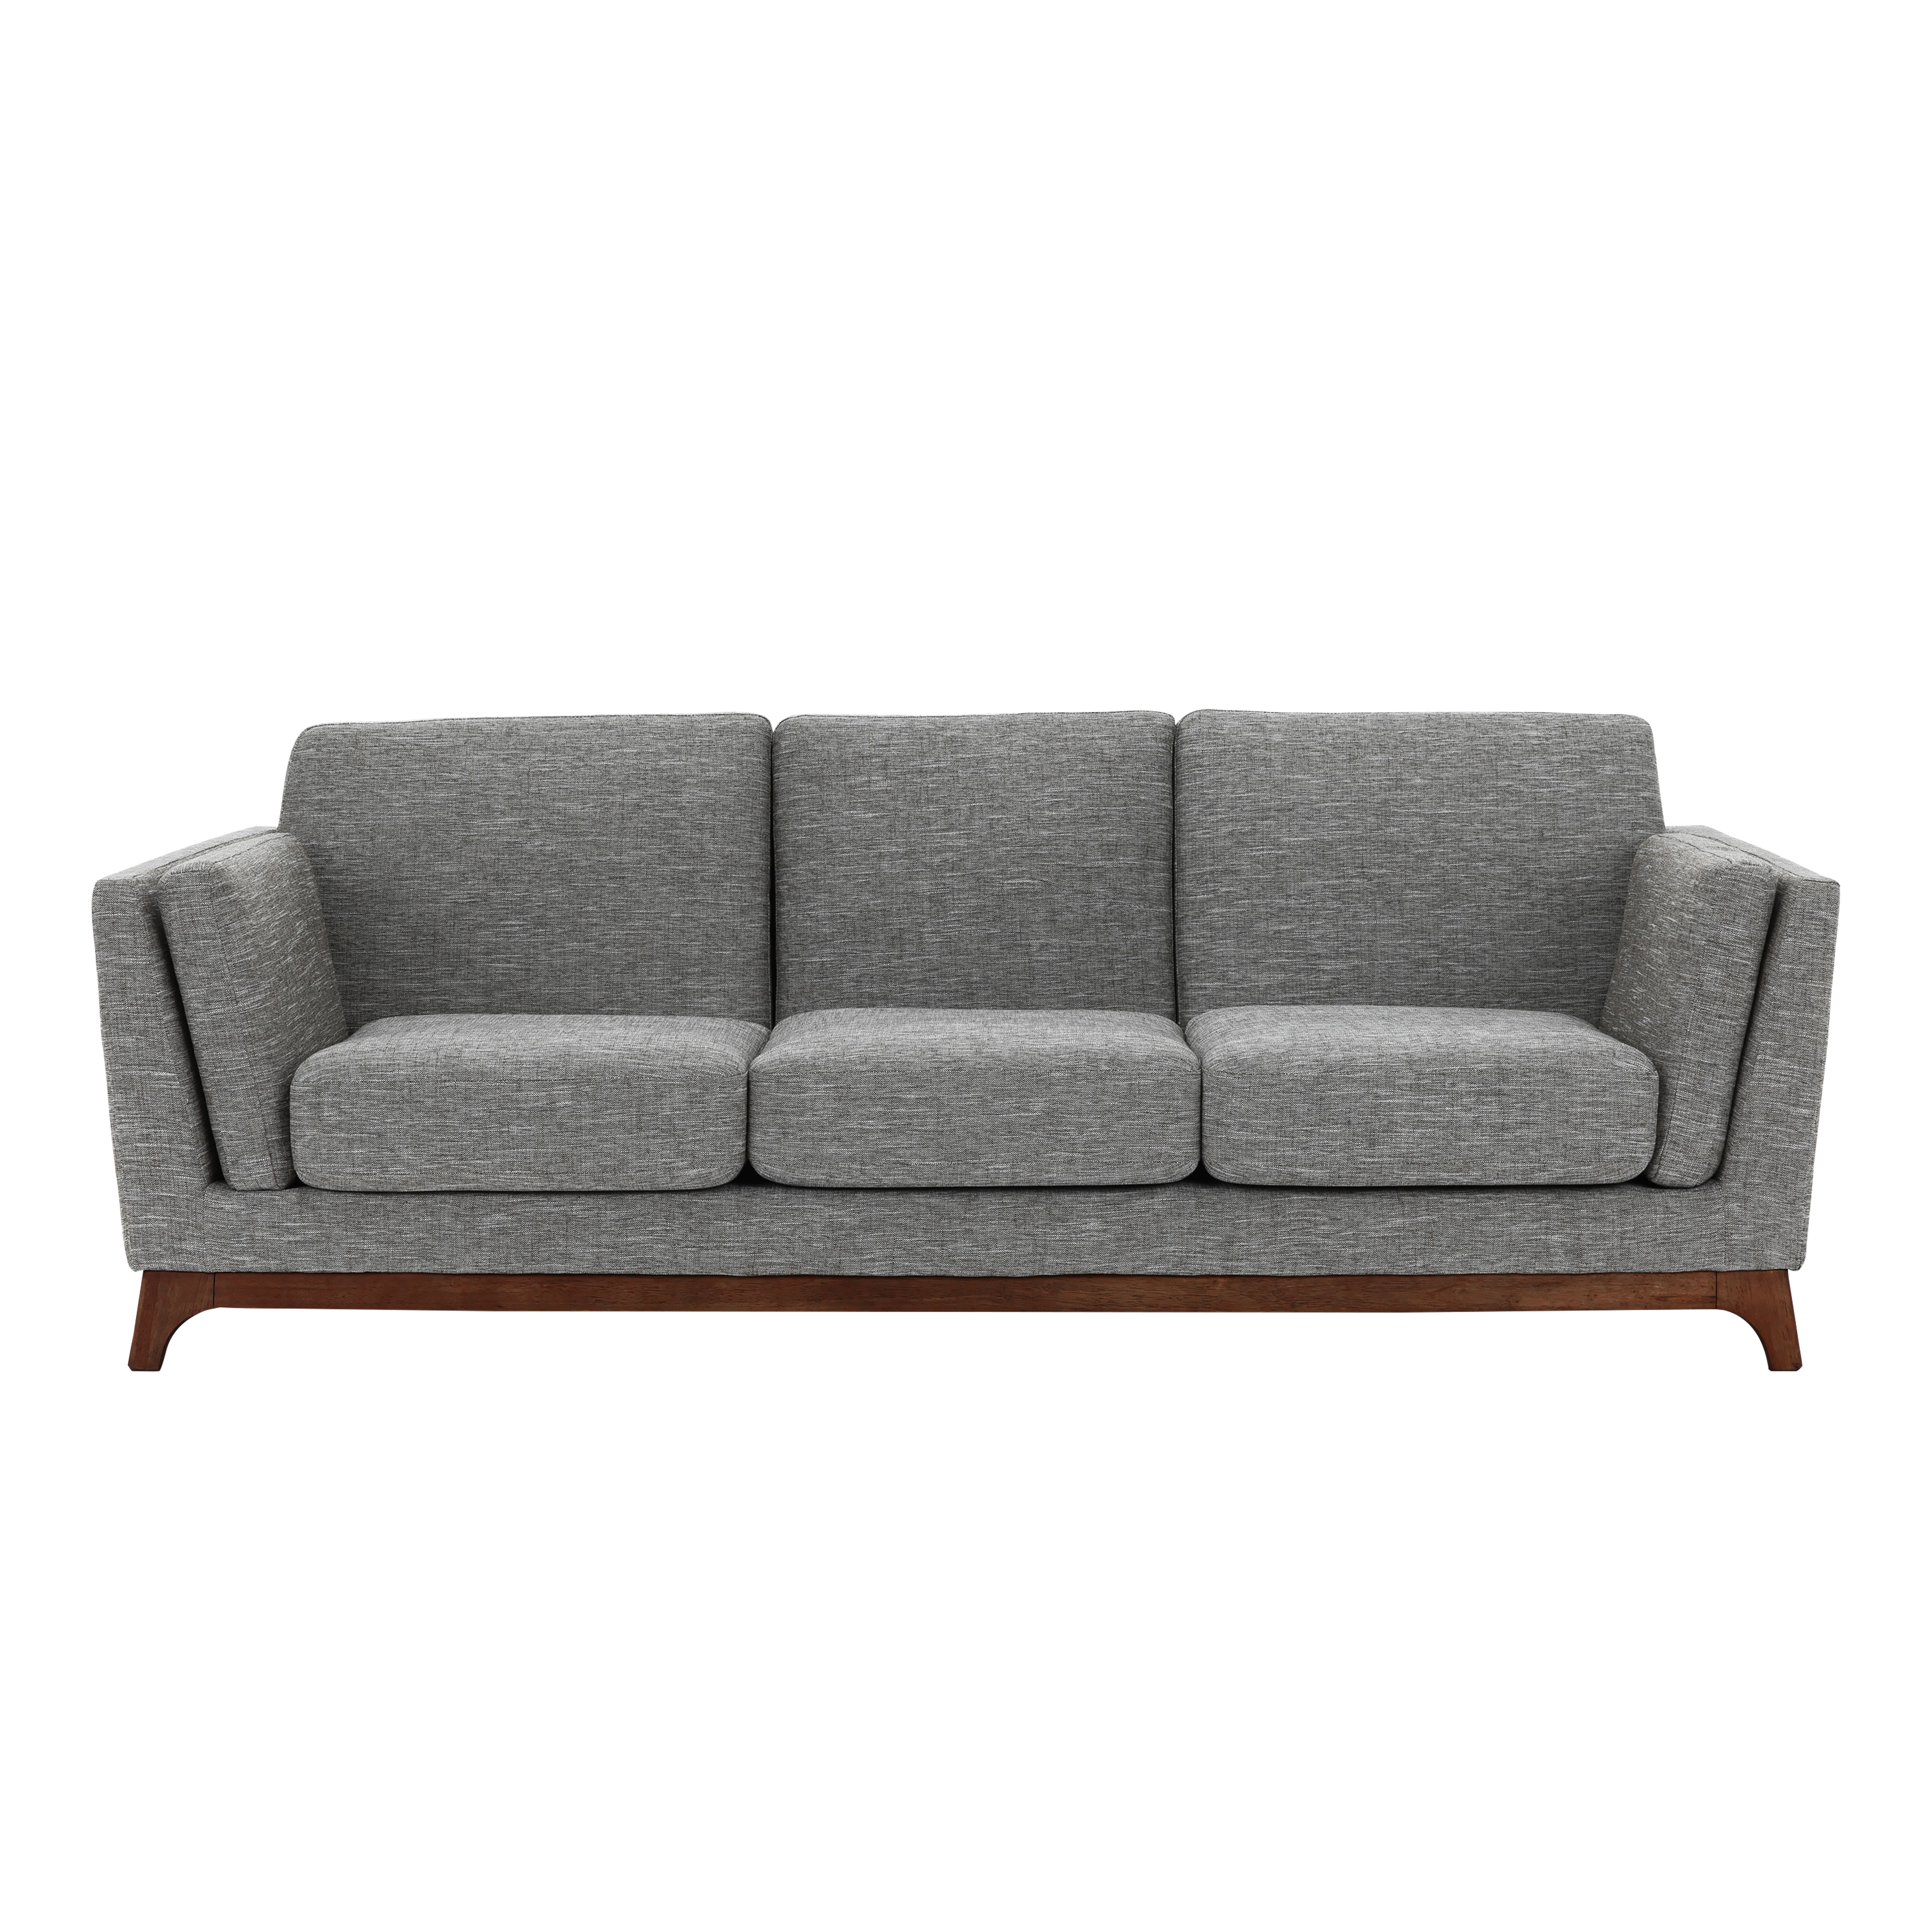 Admirable Elijah 3 Seater Sofa Pebble Fabric Products In 2019 3 Alphanode Cool Chair Designs And Ideas Alphanodeonline